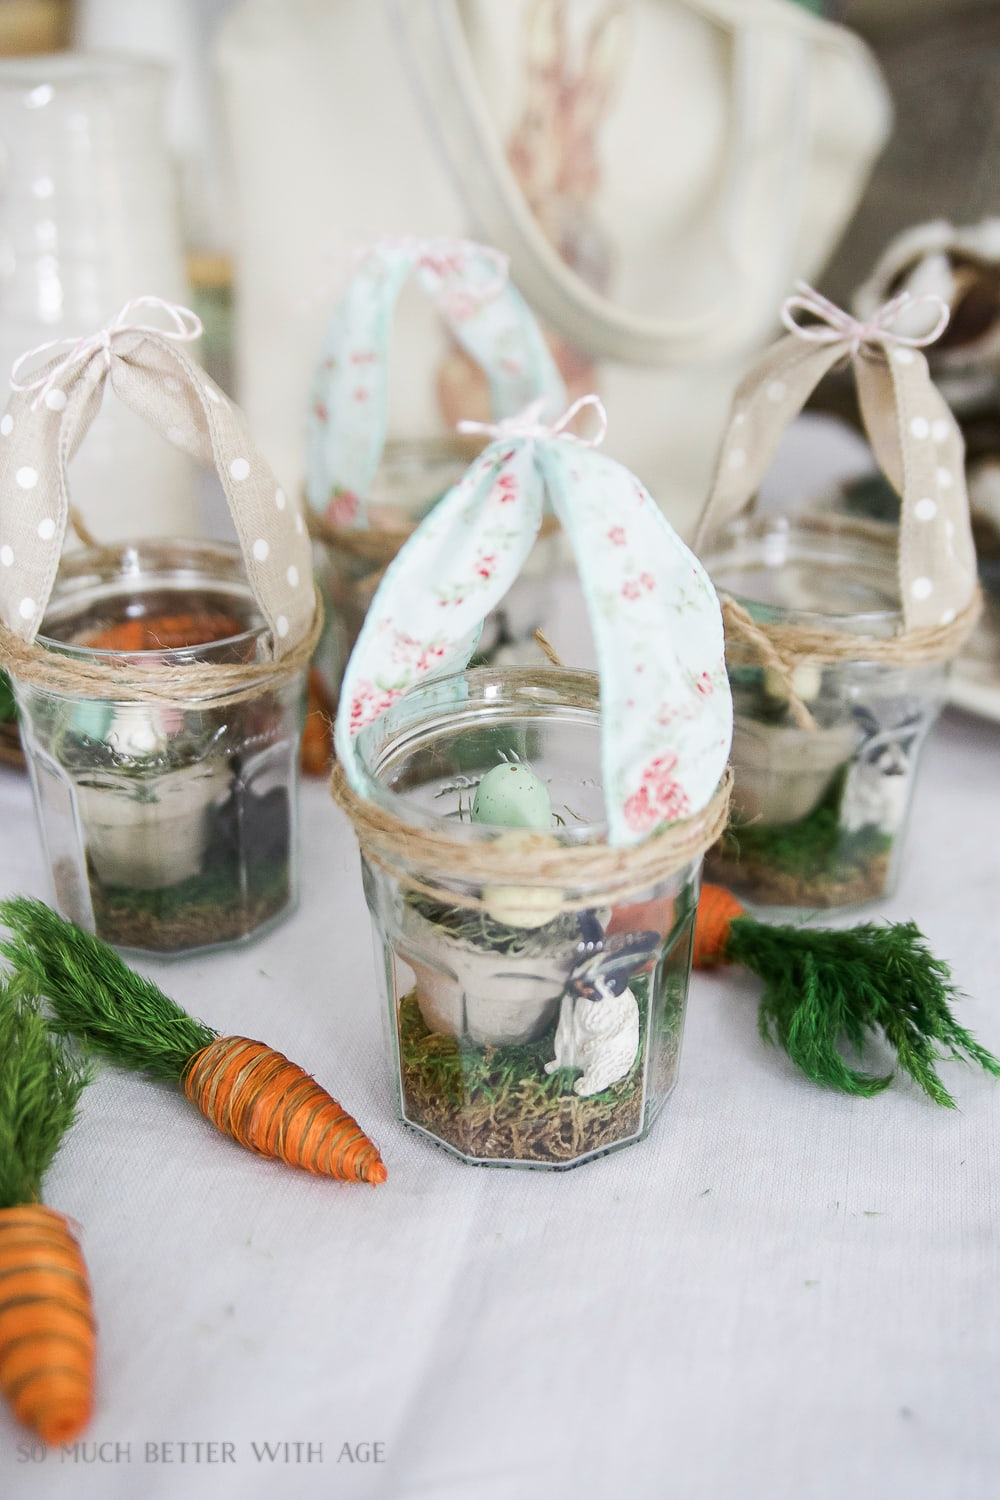 bunny-jars-bunny-ears-eggs-moss-easter